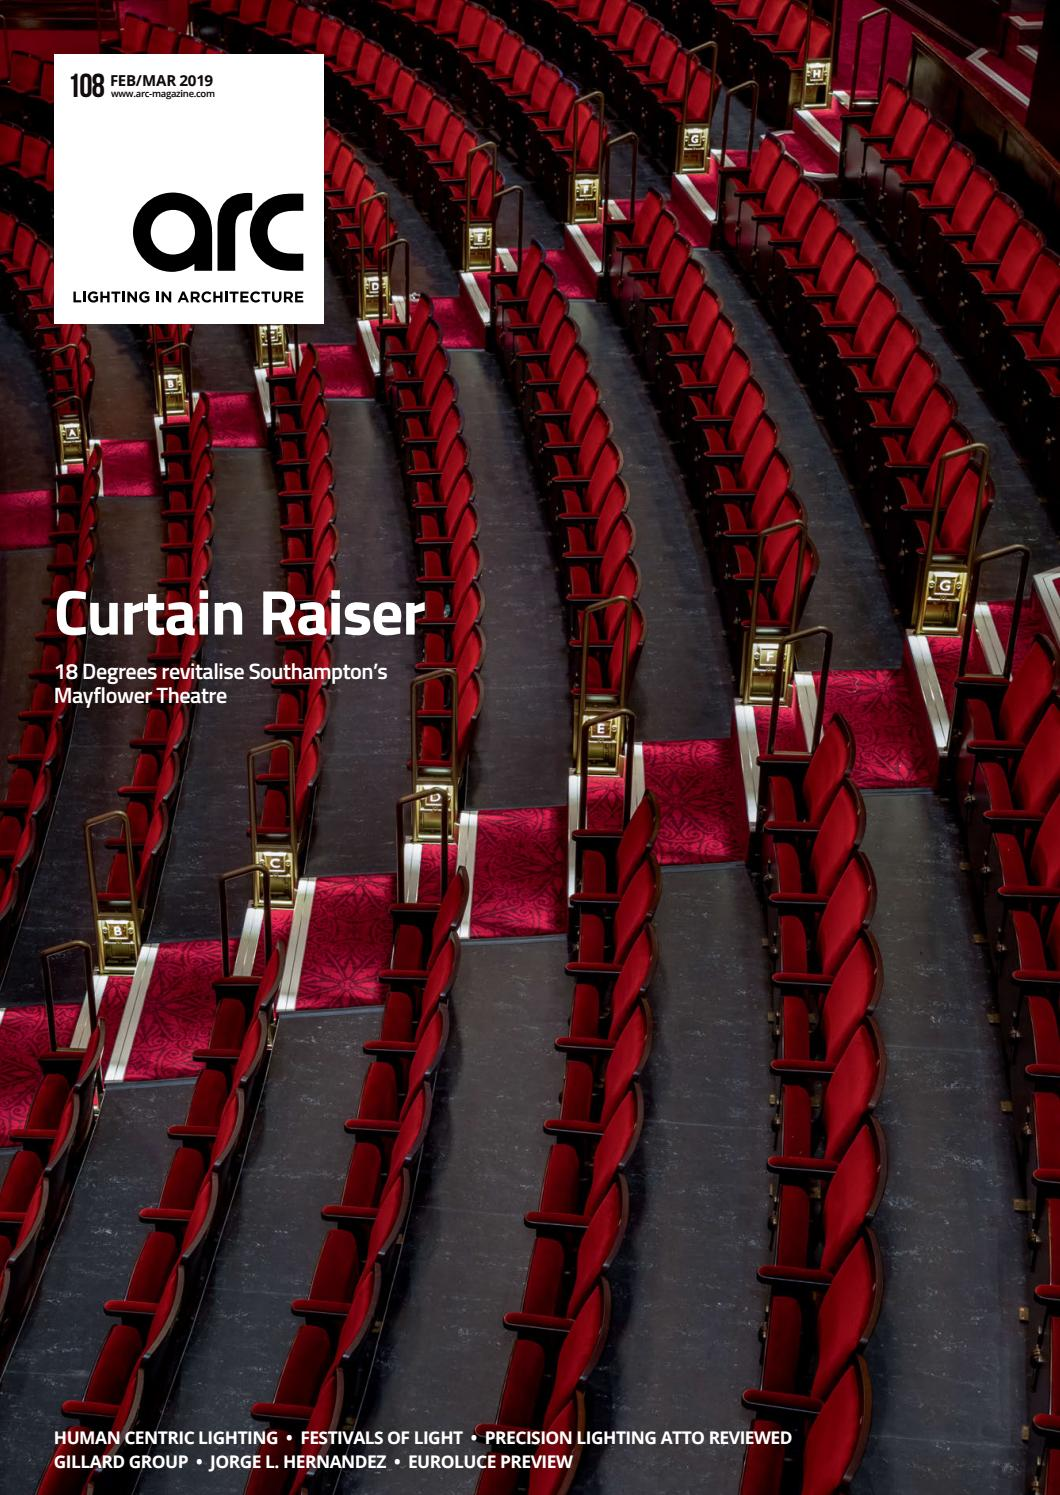 Arc February March Issue 108 By Mondiale Media Issuu